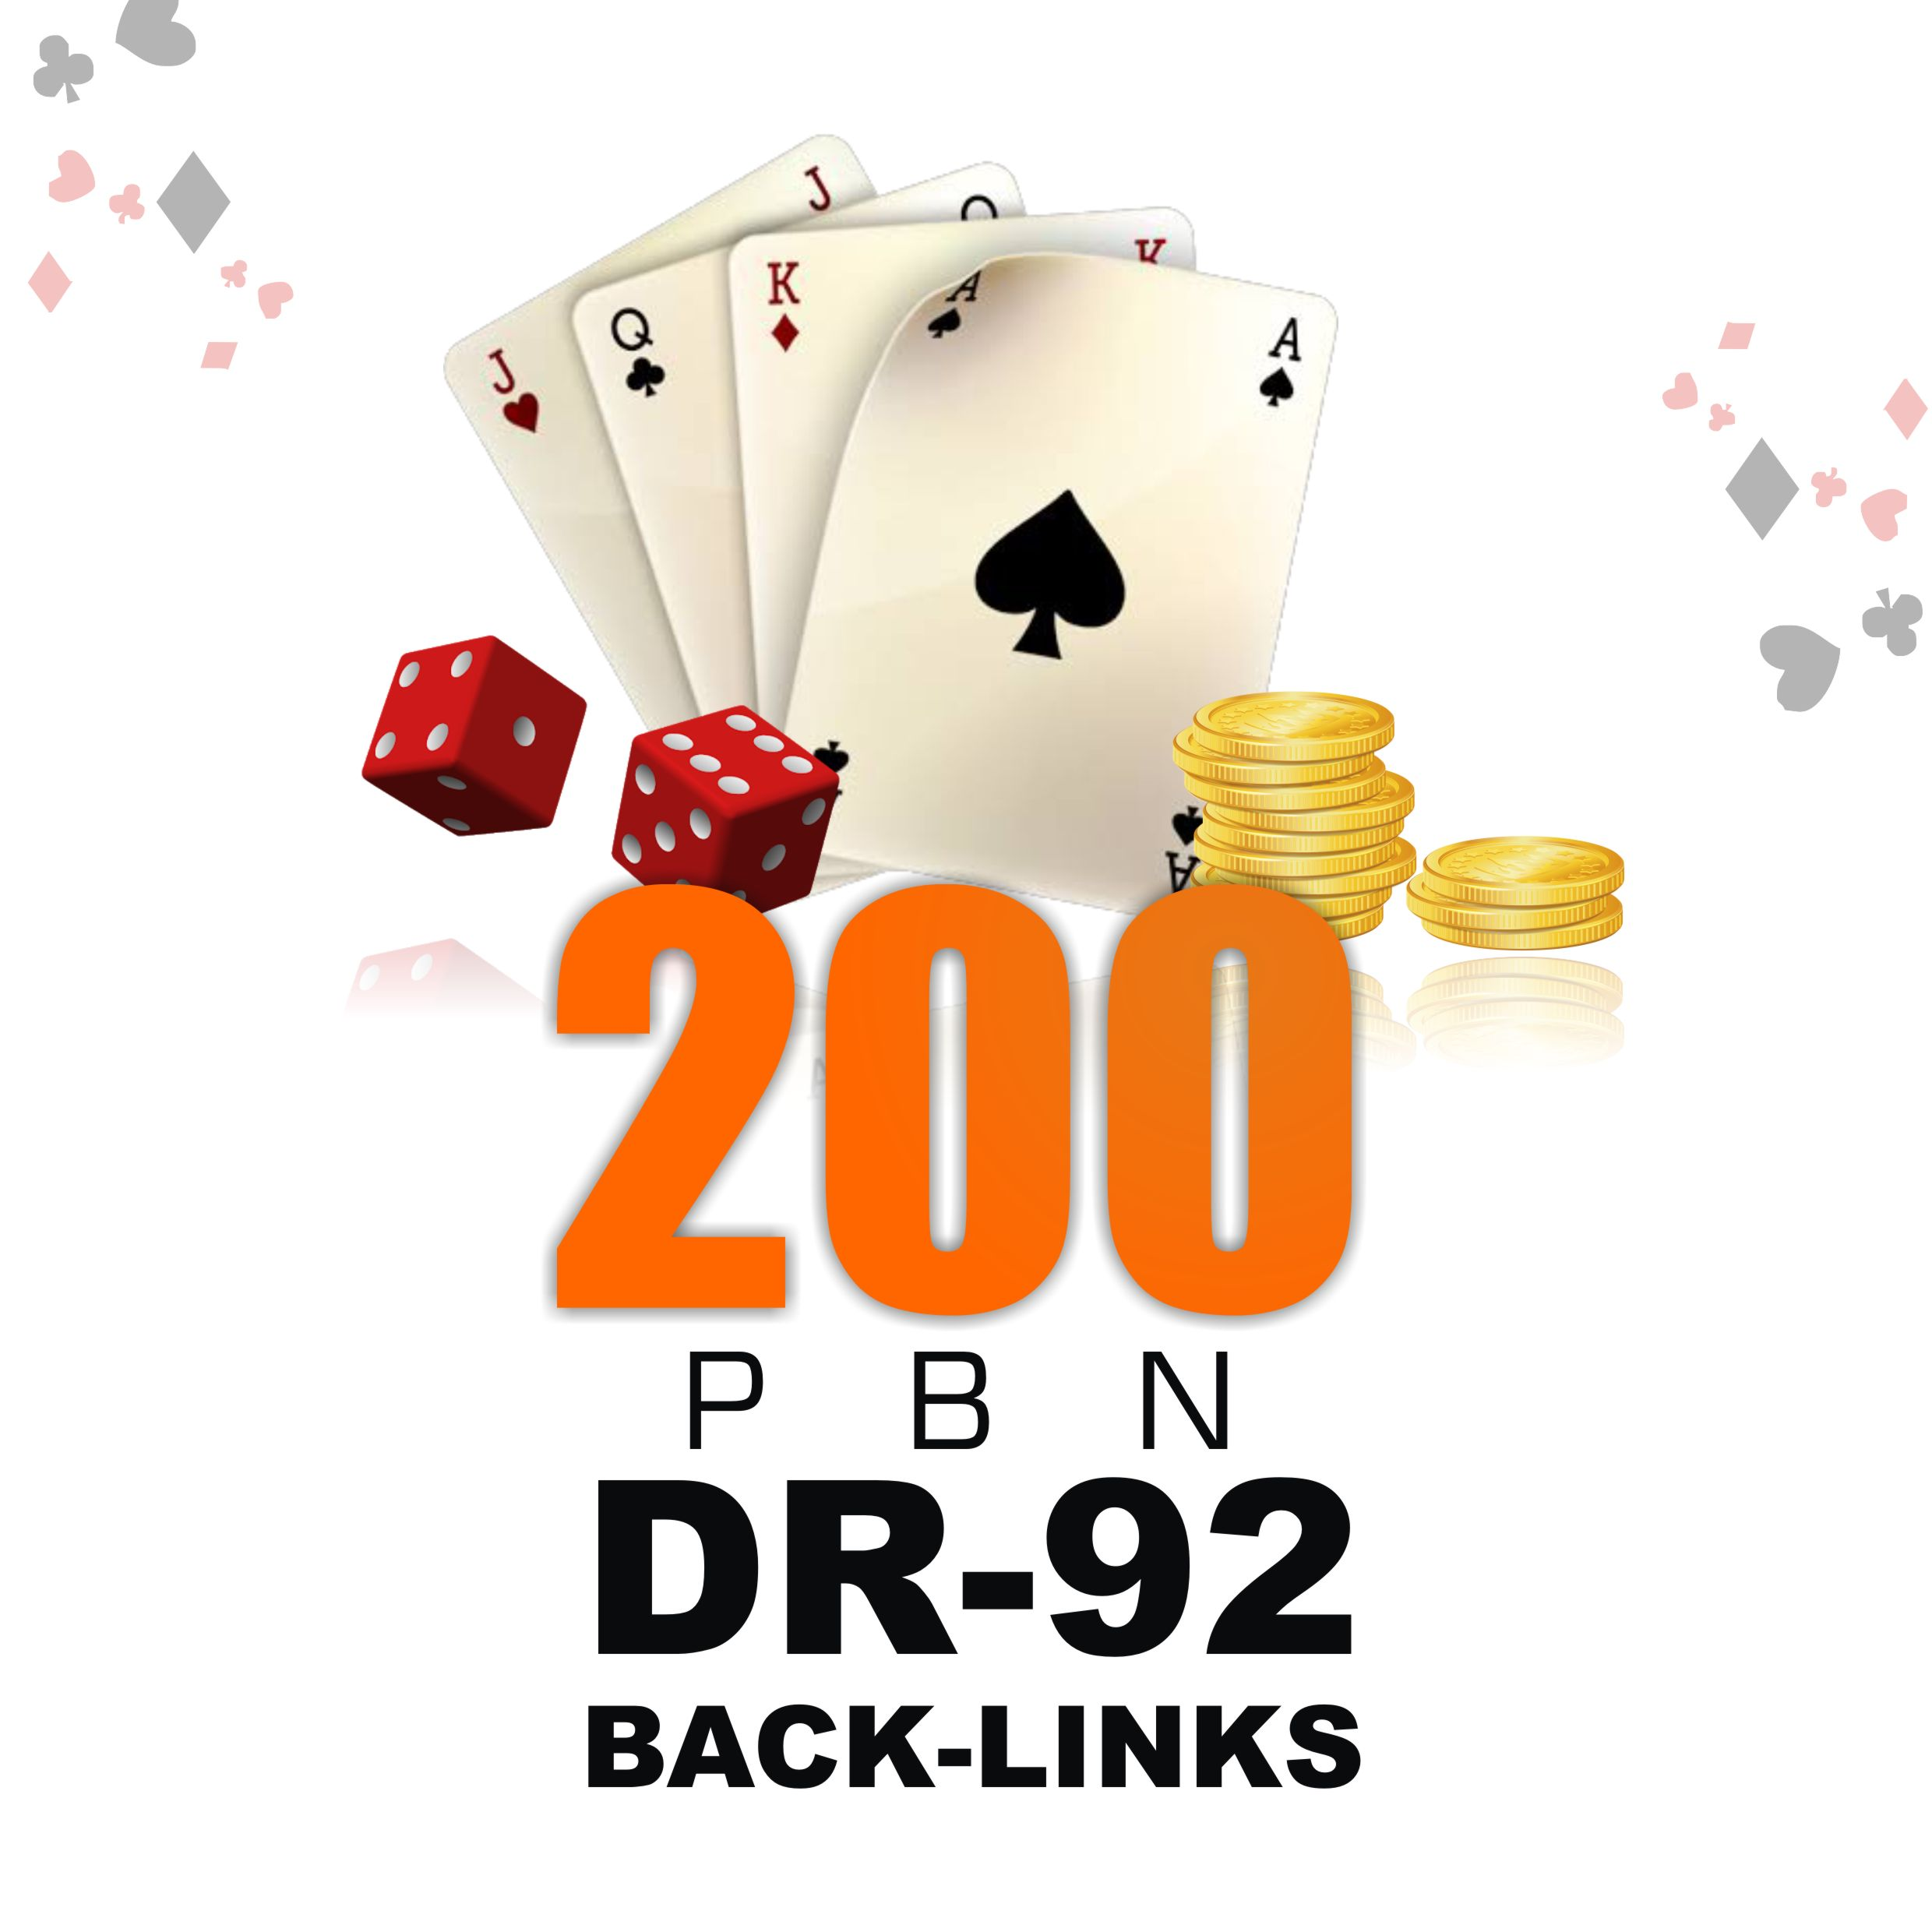 Get 200 High Quality PBN Back-links for Casino,  Poker and Website Ranking